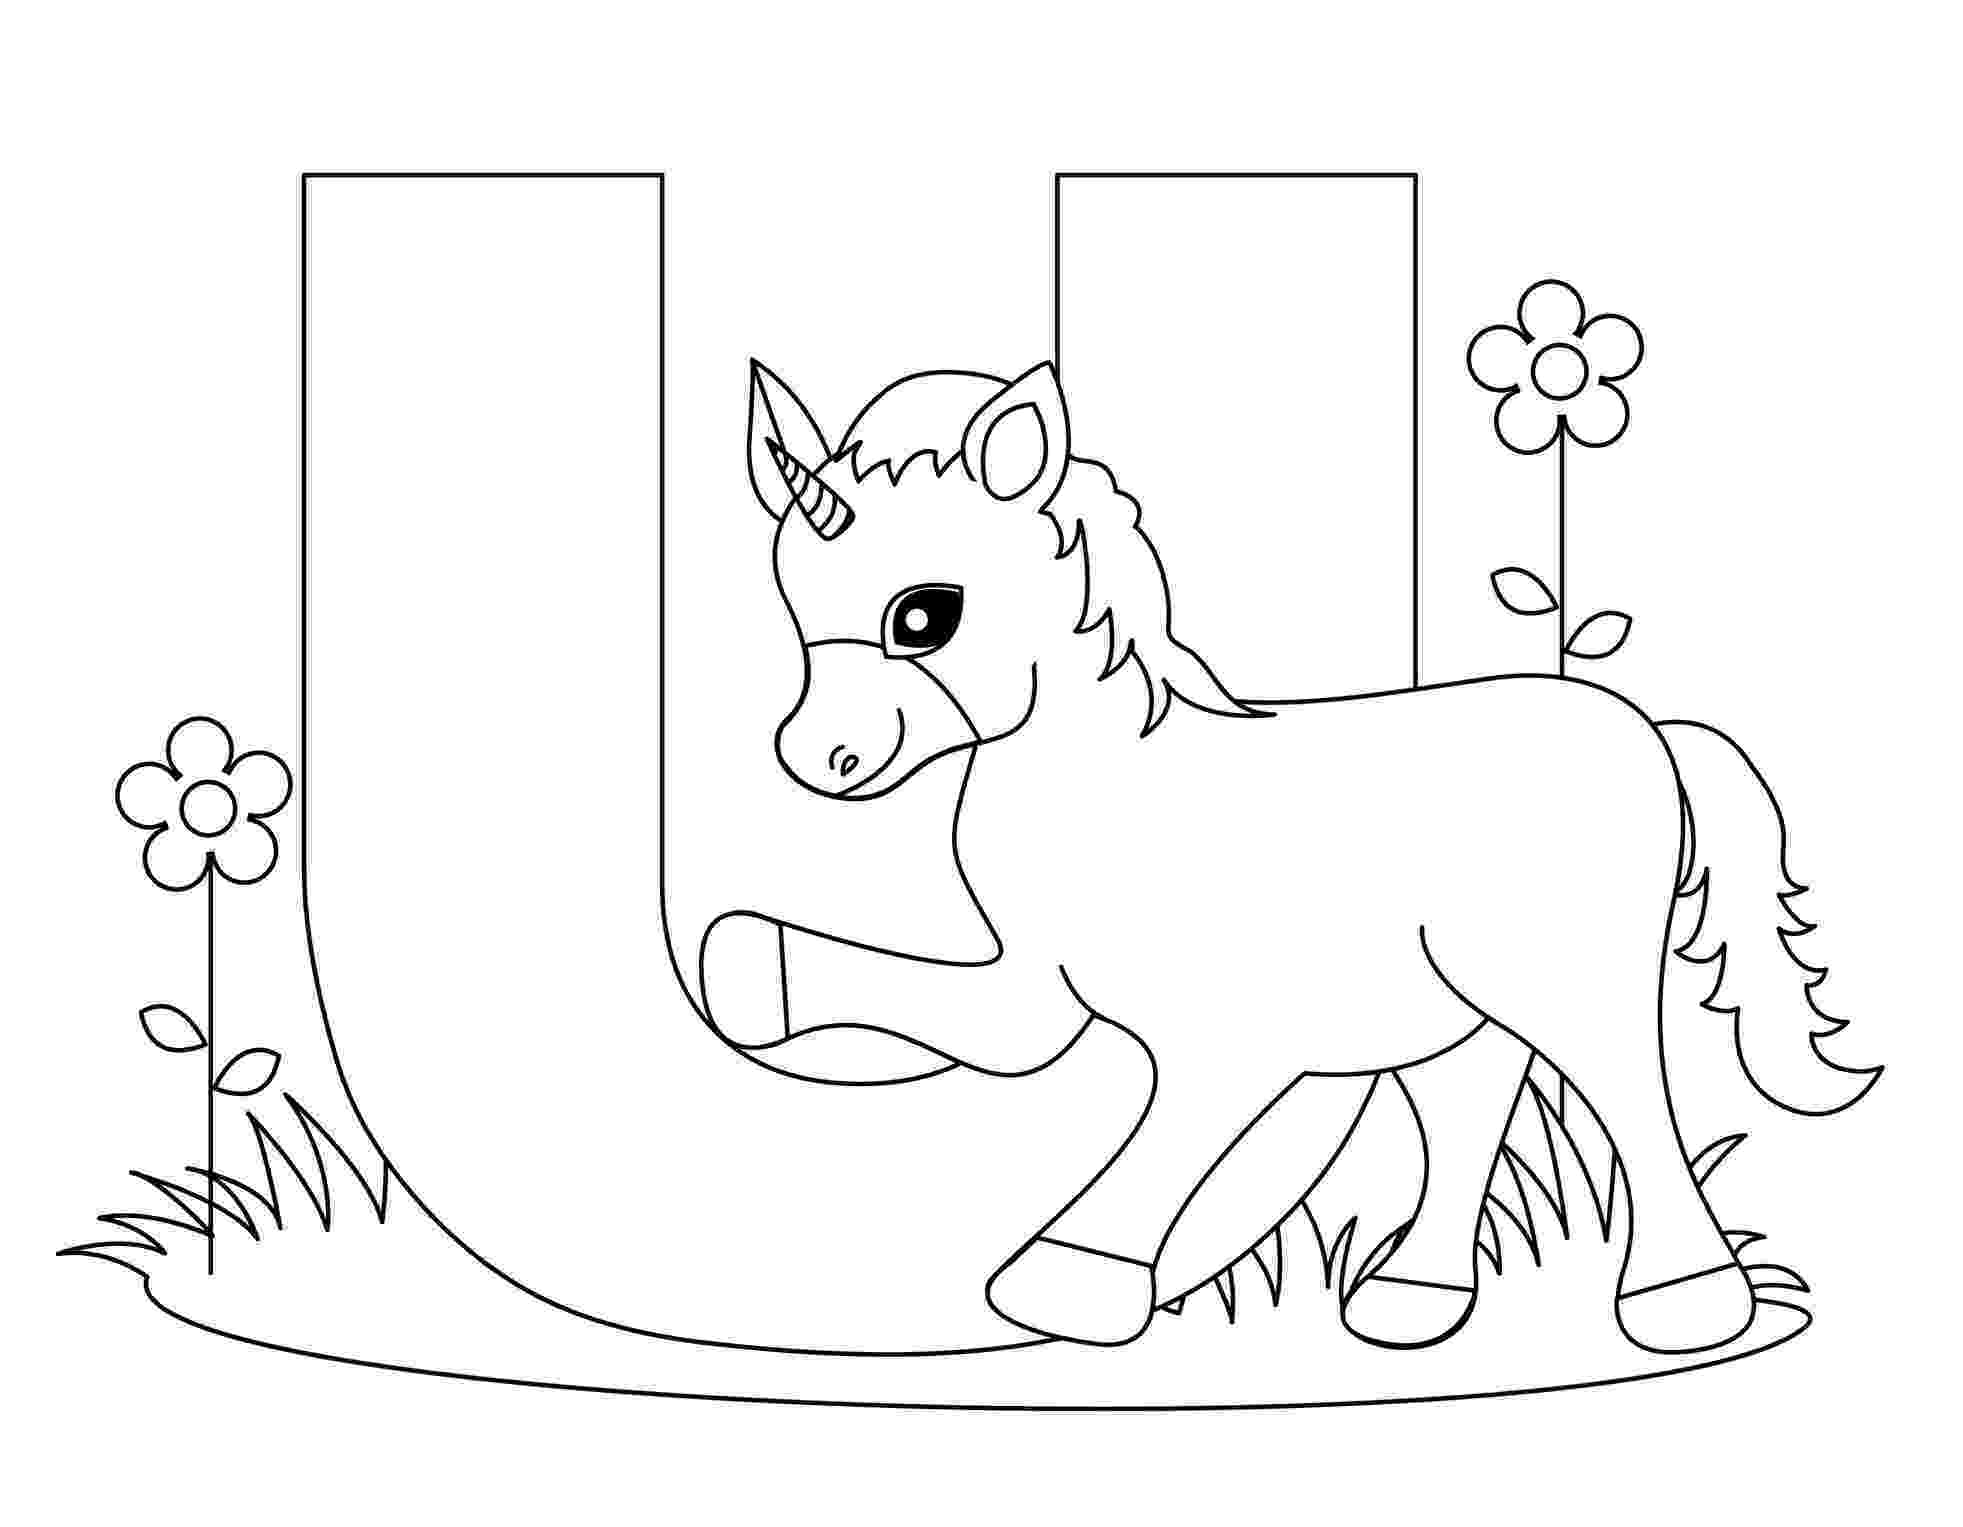 printable coloring alphabet letters free printable alphabet coloring pages for kids best coloring printable letters alphabet 1 1